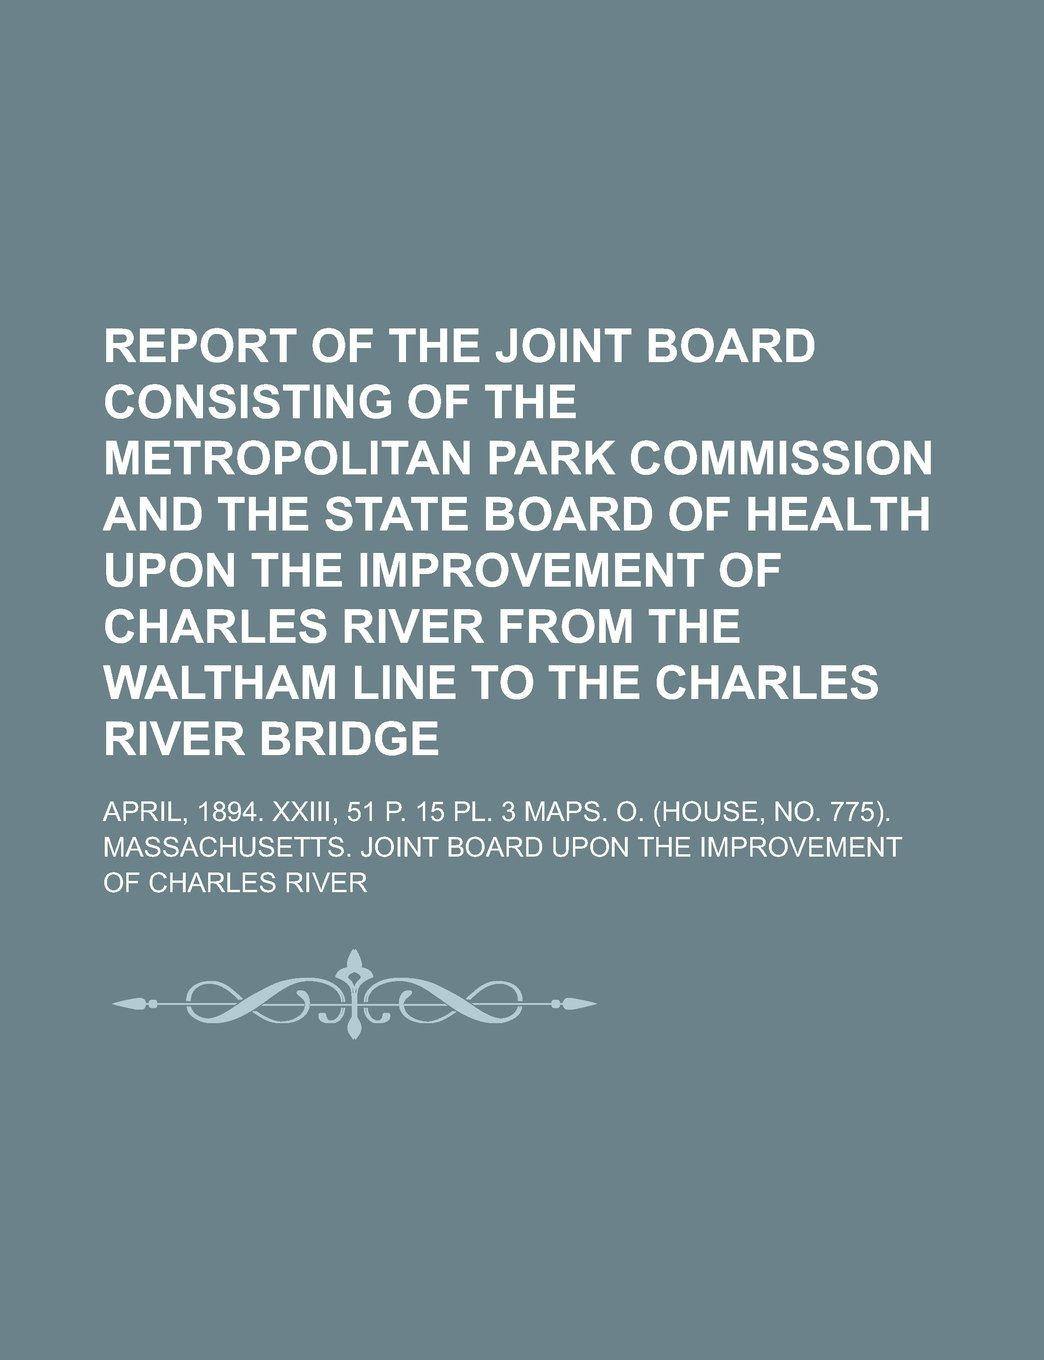 Download Report of the Joint Board consisting of the Metropolitan Park Commission and the State Board of Health upon the improvement of Charles River from the ... April, 1894. xxiii, 51 p. 15 pl. 3 maps. O. PDF